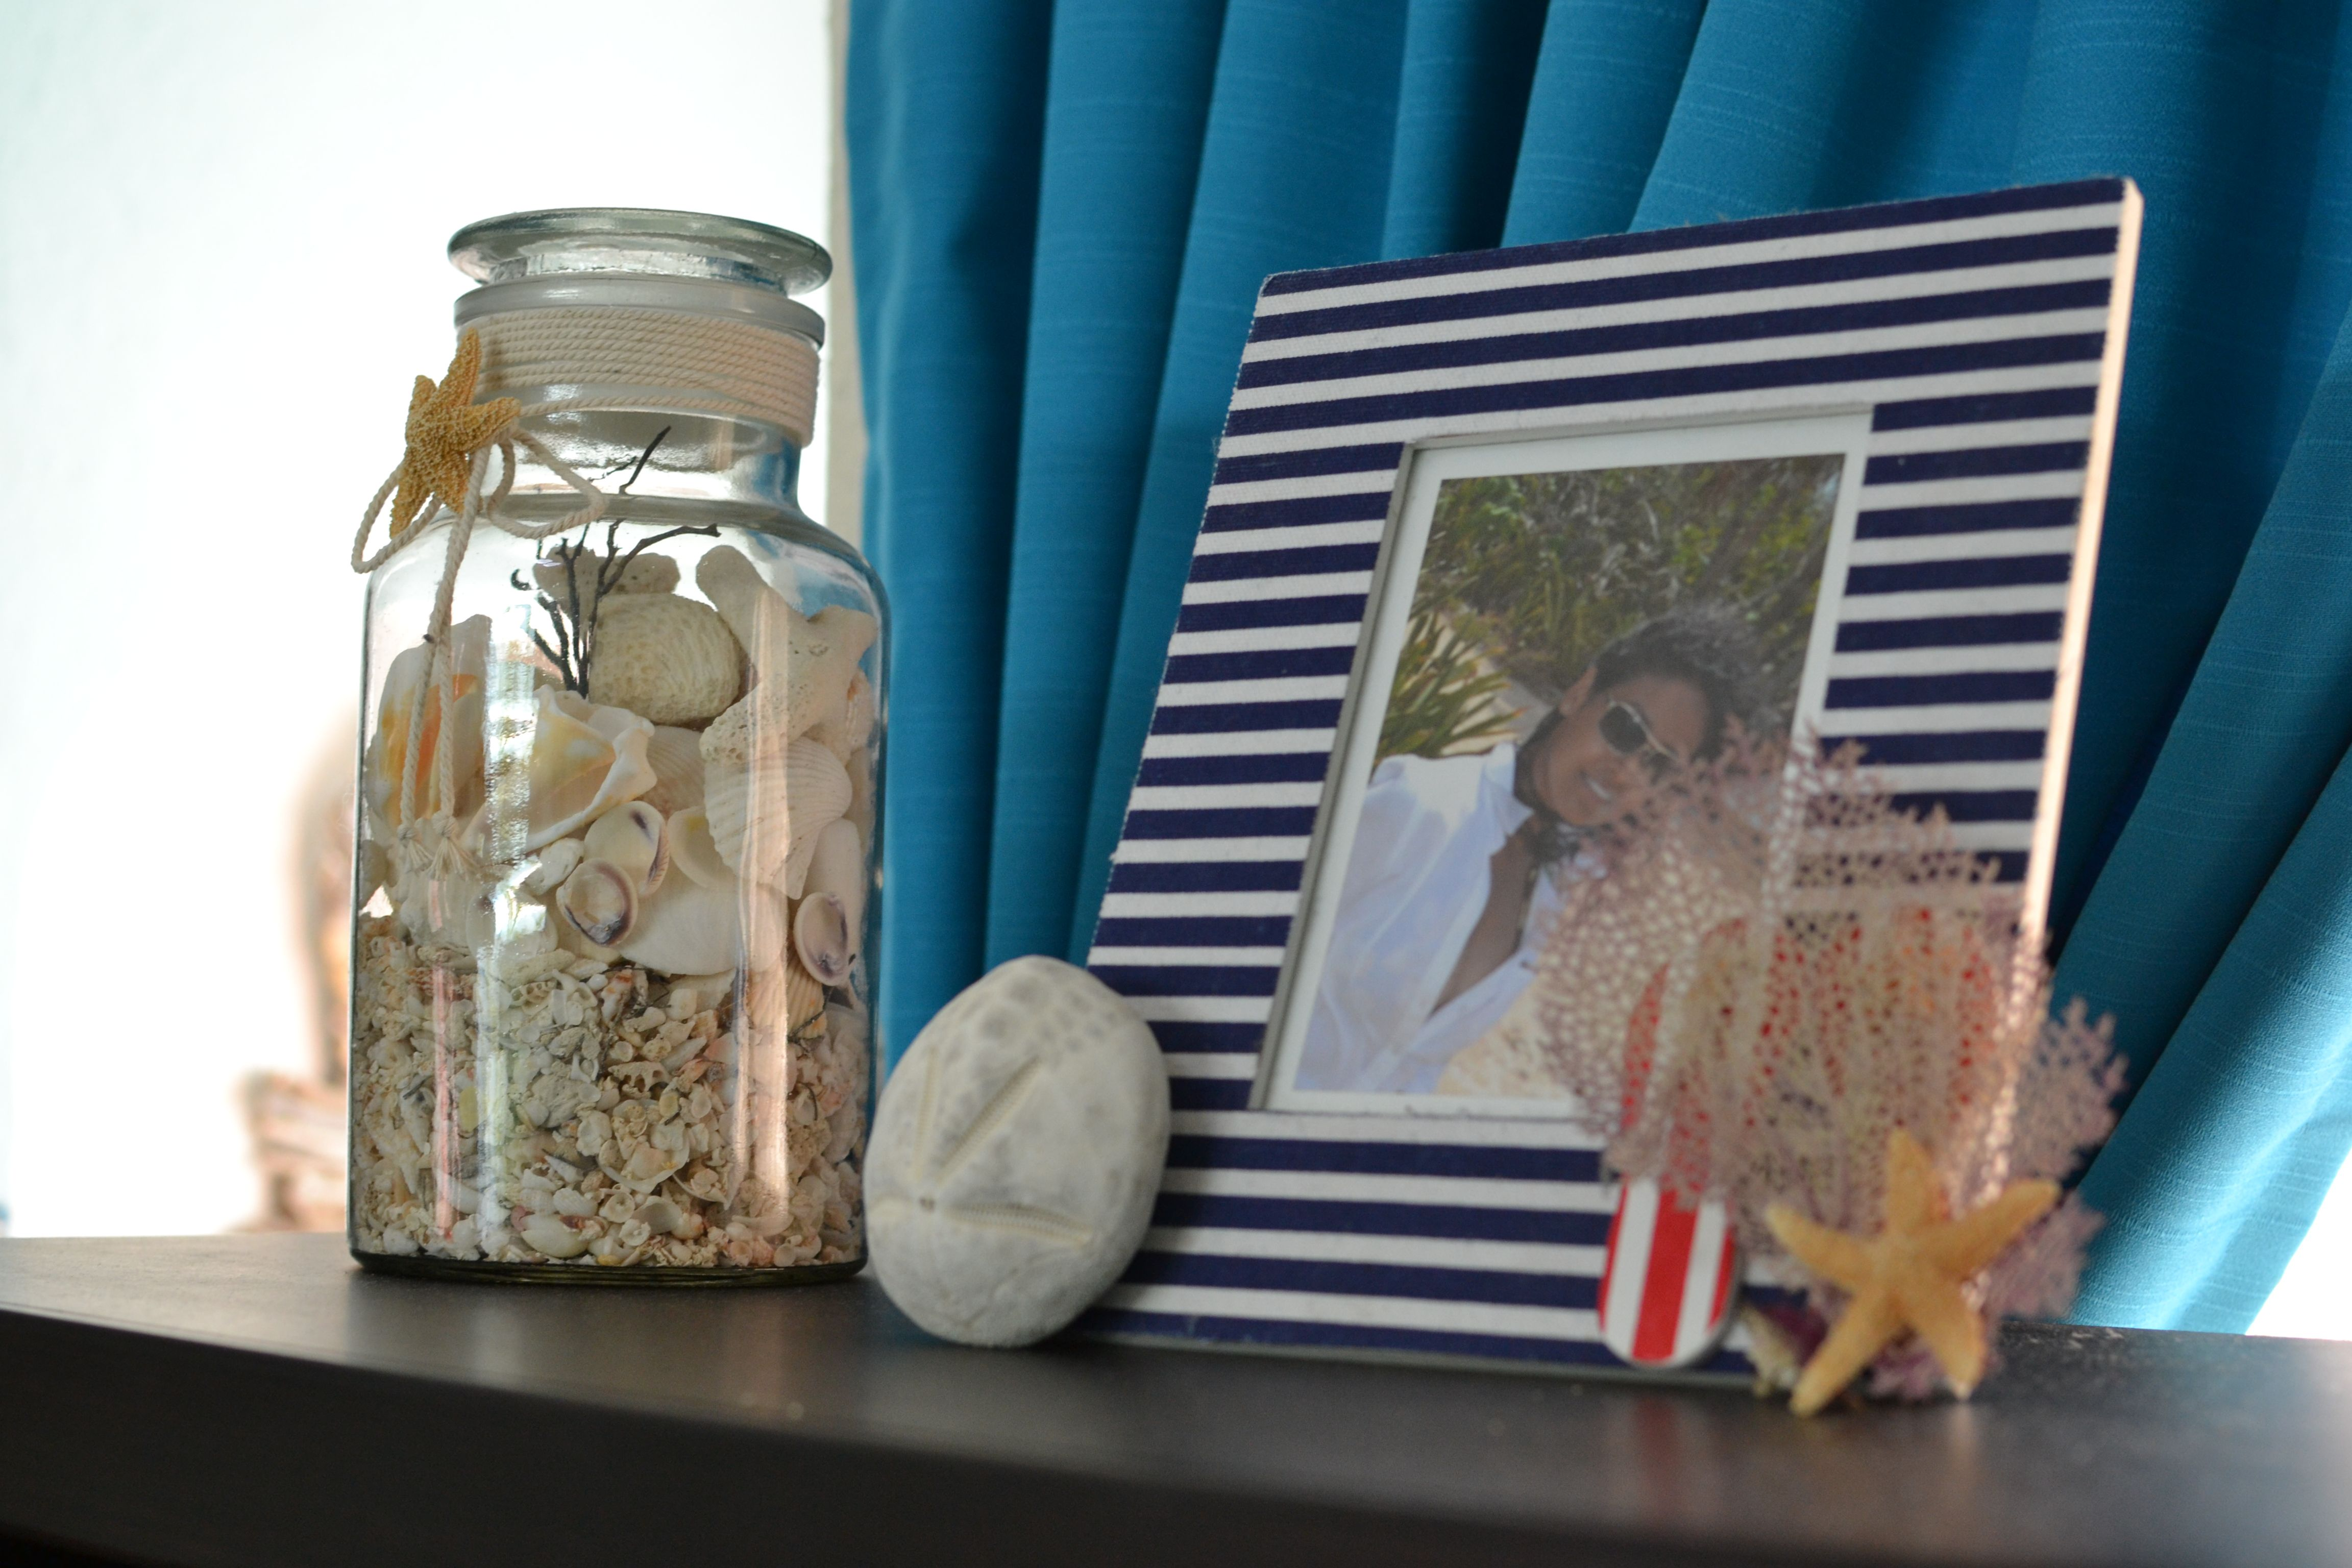 Jarron con conchas. Beachy Picture Frame. Rustic simple decor. Beach style. Nautical style. Coastal living. Cleat